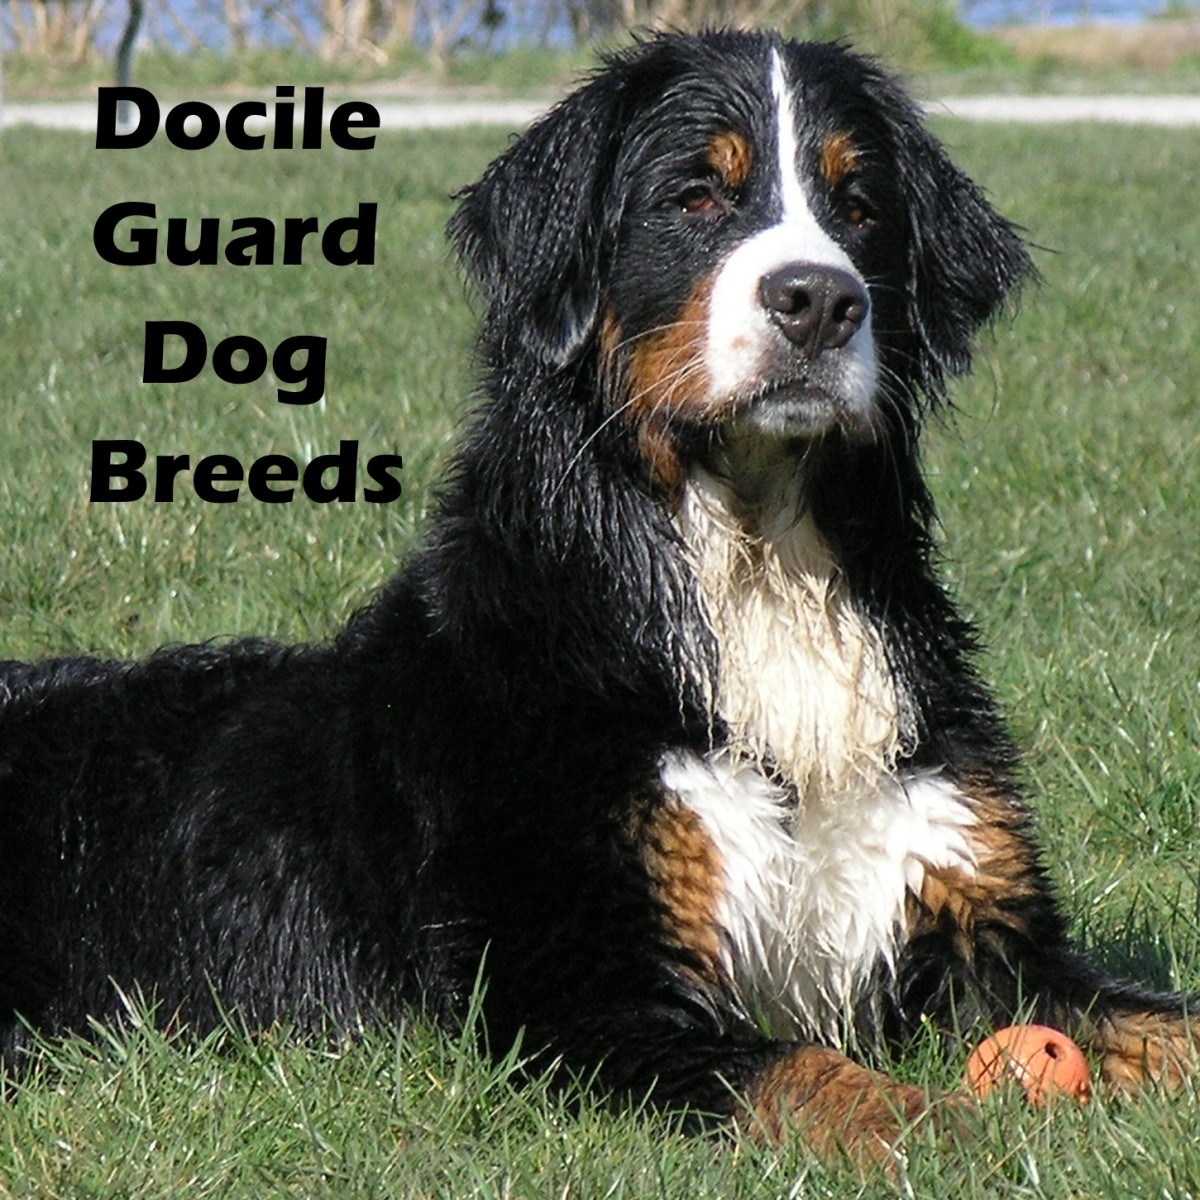 7 Dog Breeds That Make Docile Guard Dogs